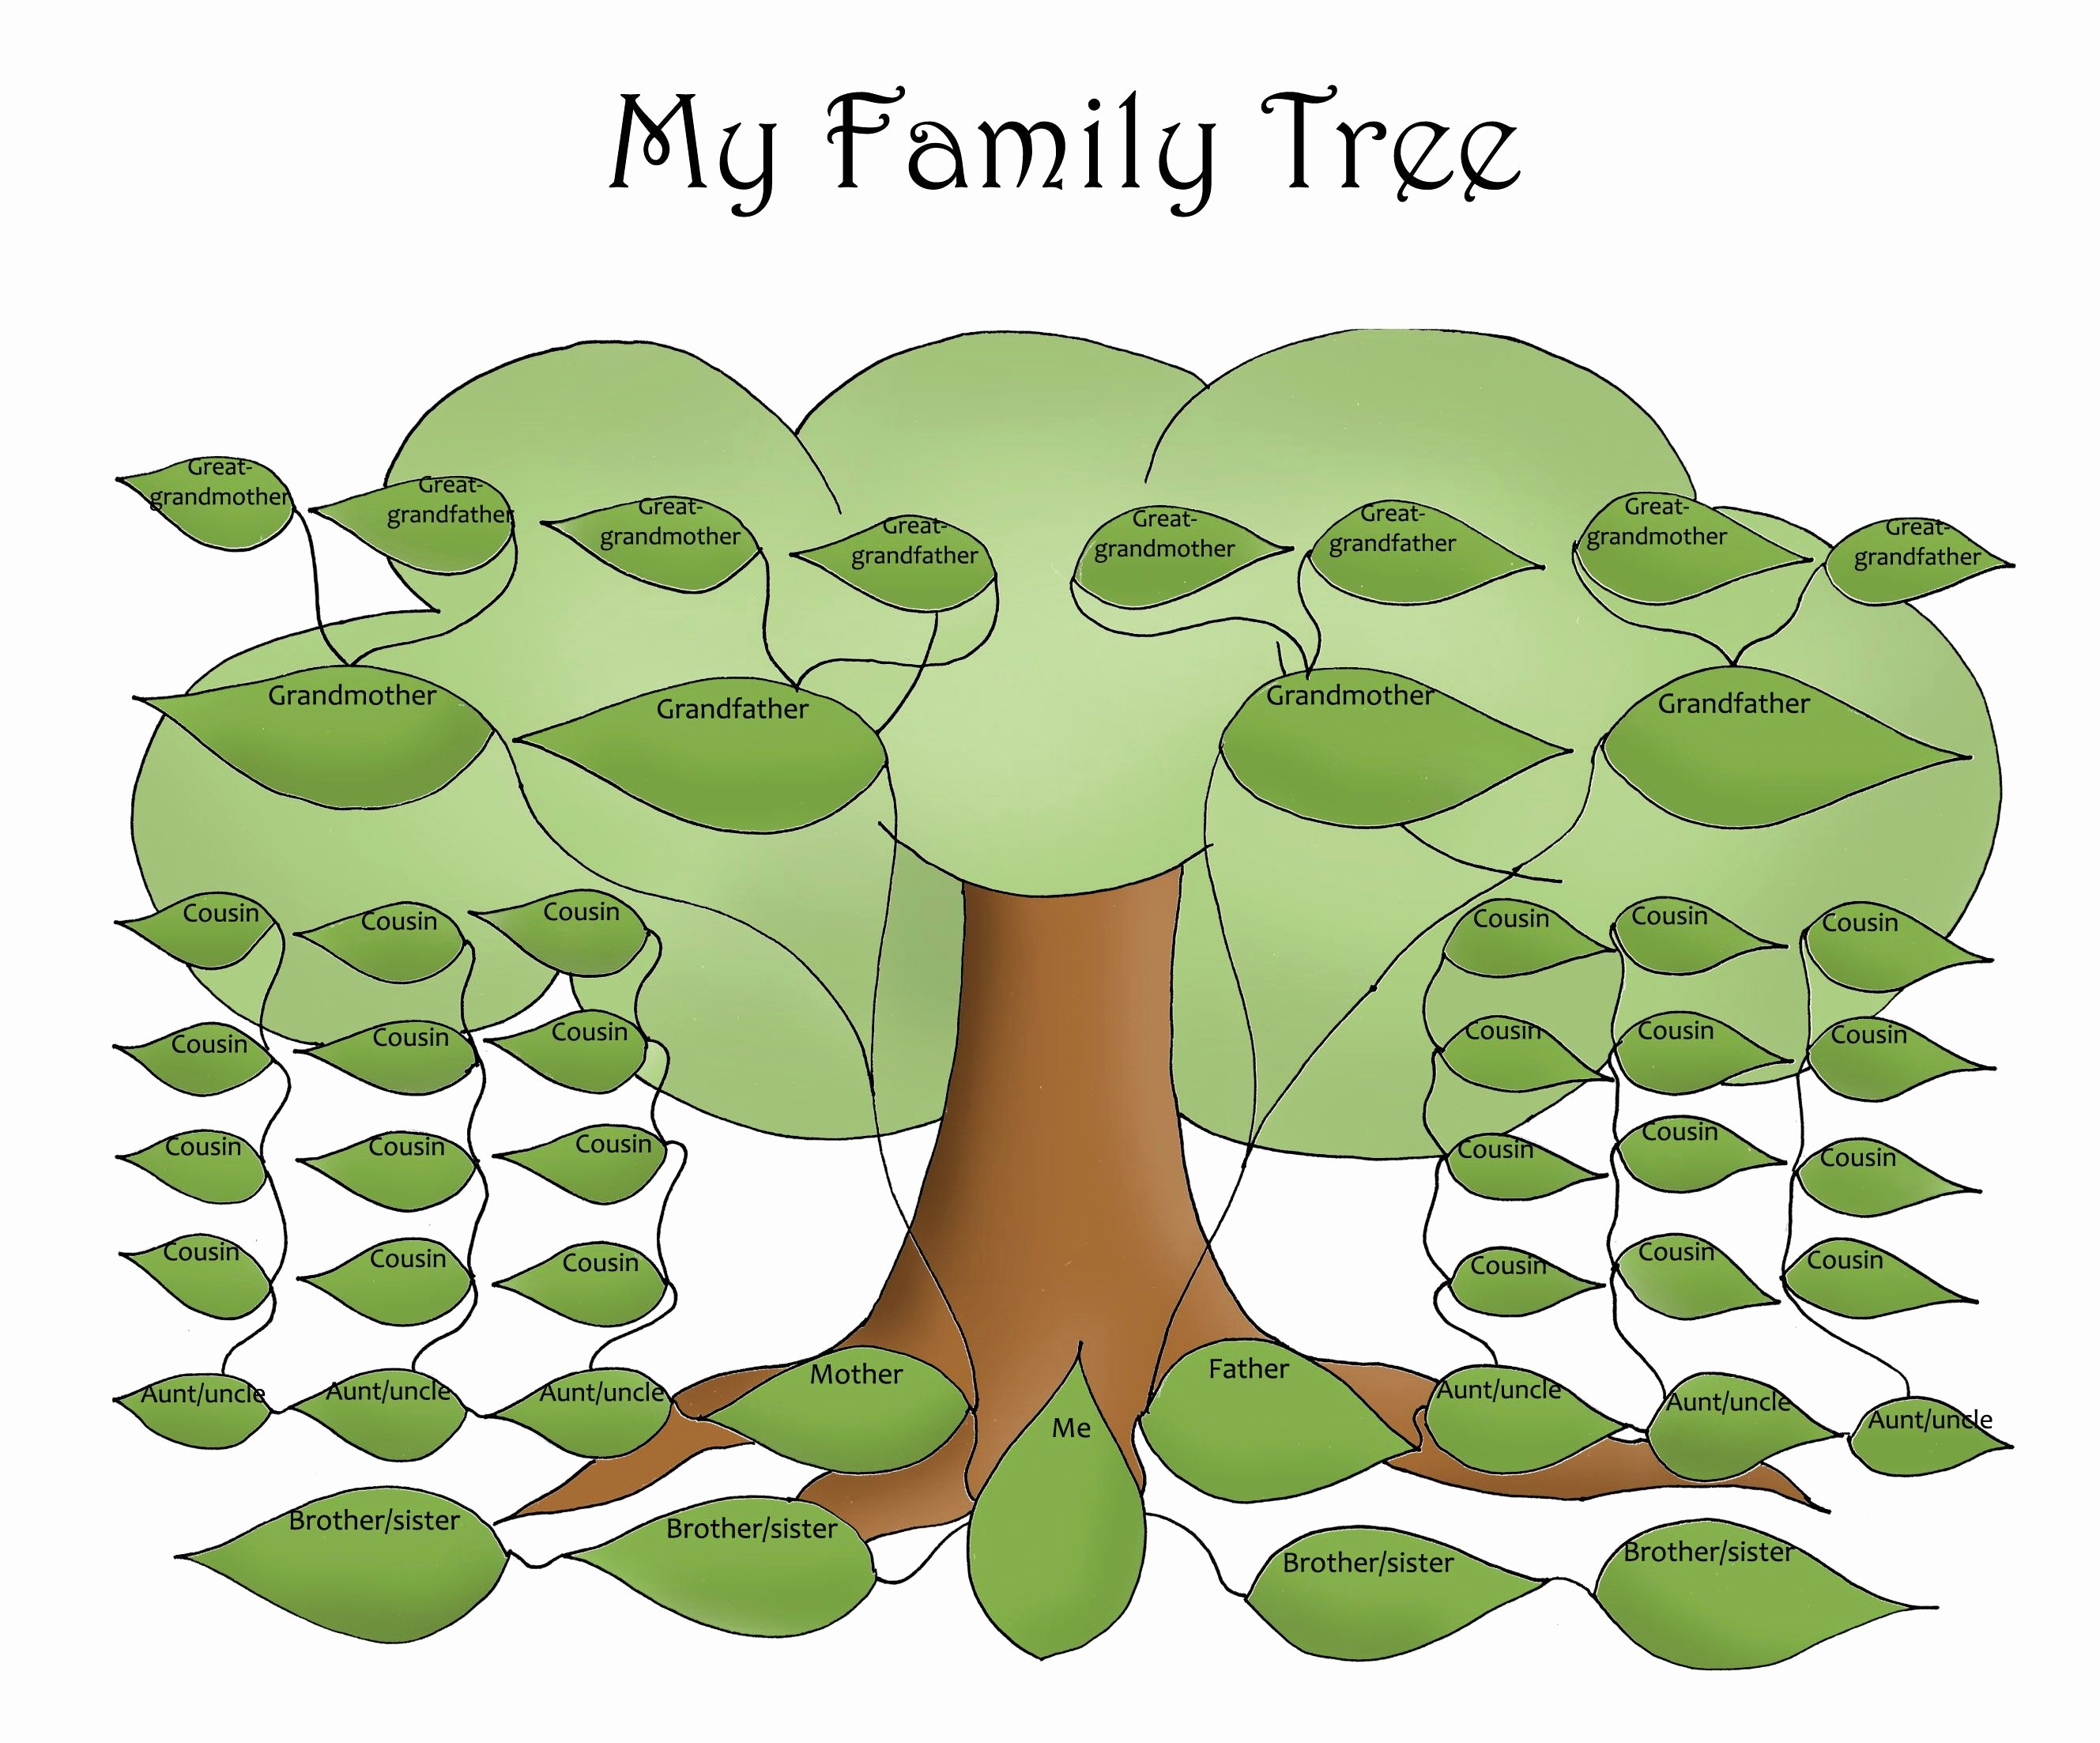 Family Tree with Pictures Template Awesome Free Editable Family Tree Template Daily Roabox